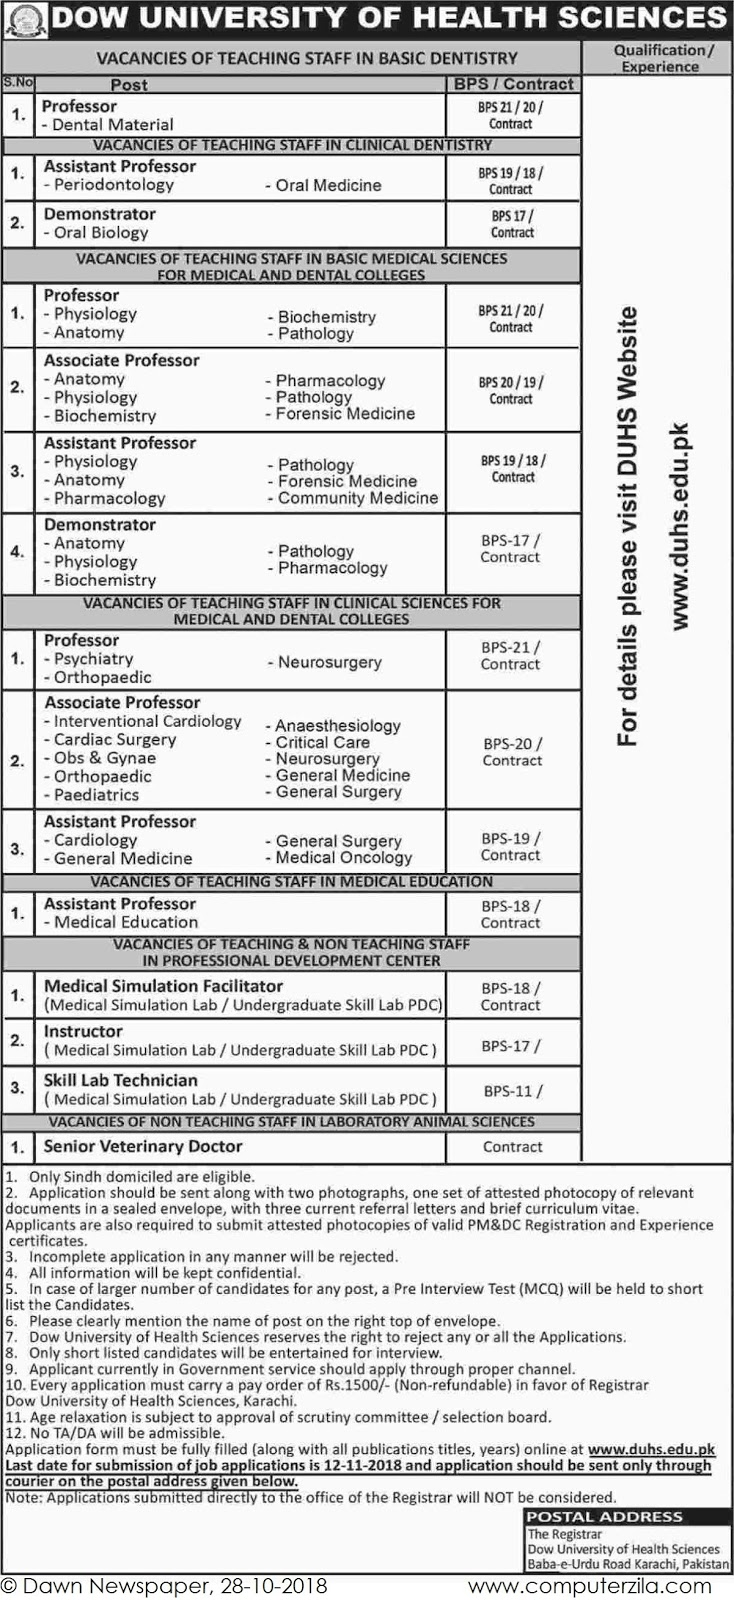 Job Opportunities at Dow University of Health Sciences